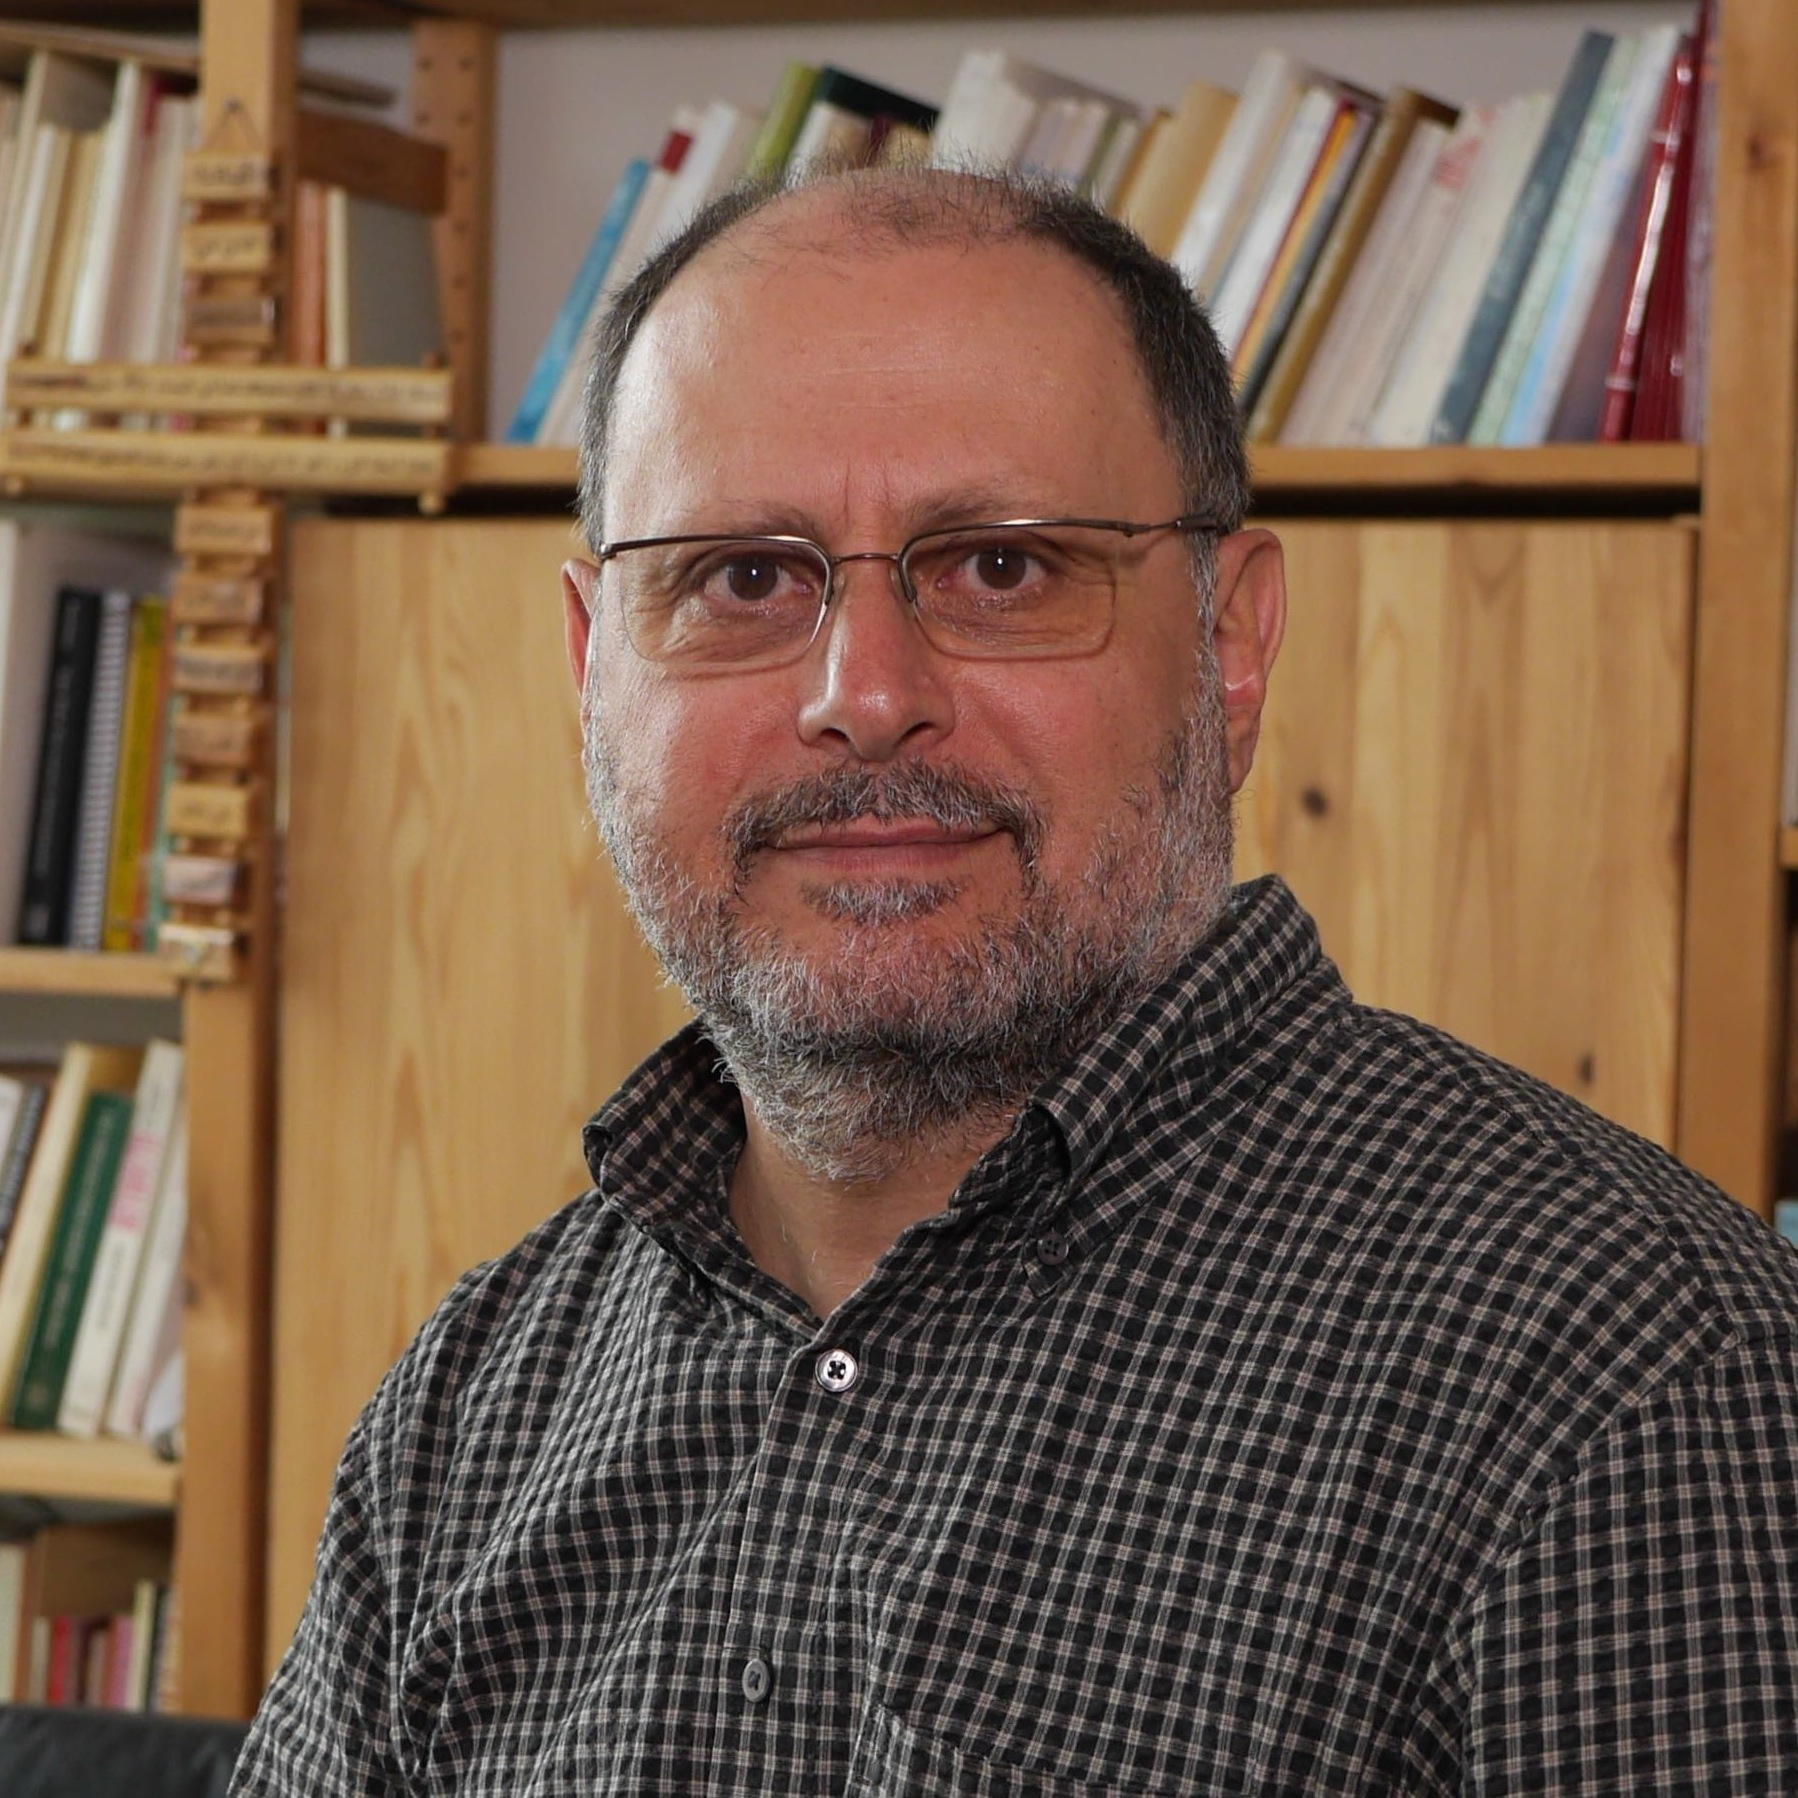 Michel Andraos (Catholic Theological Union—Chicago, IL, USA)